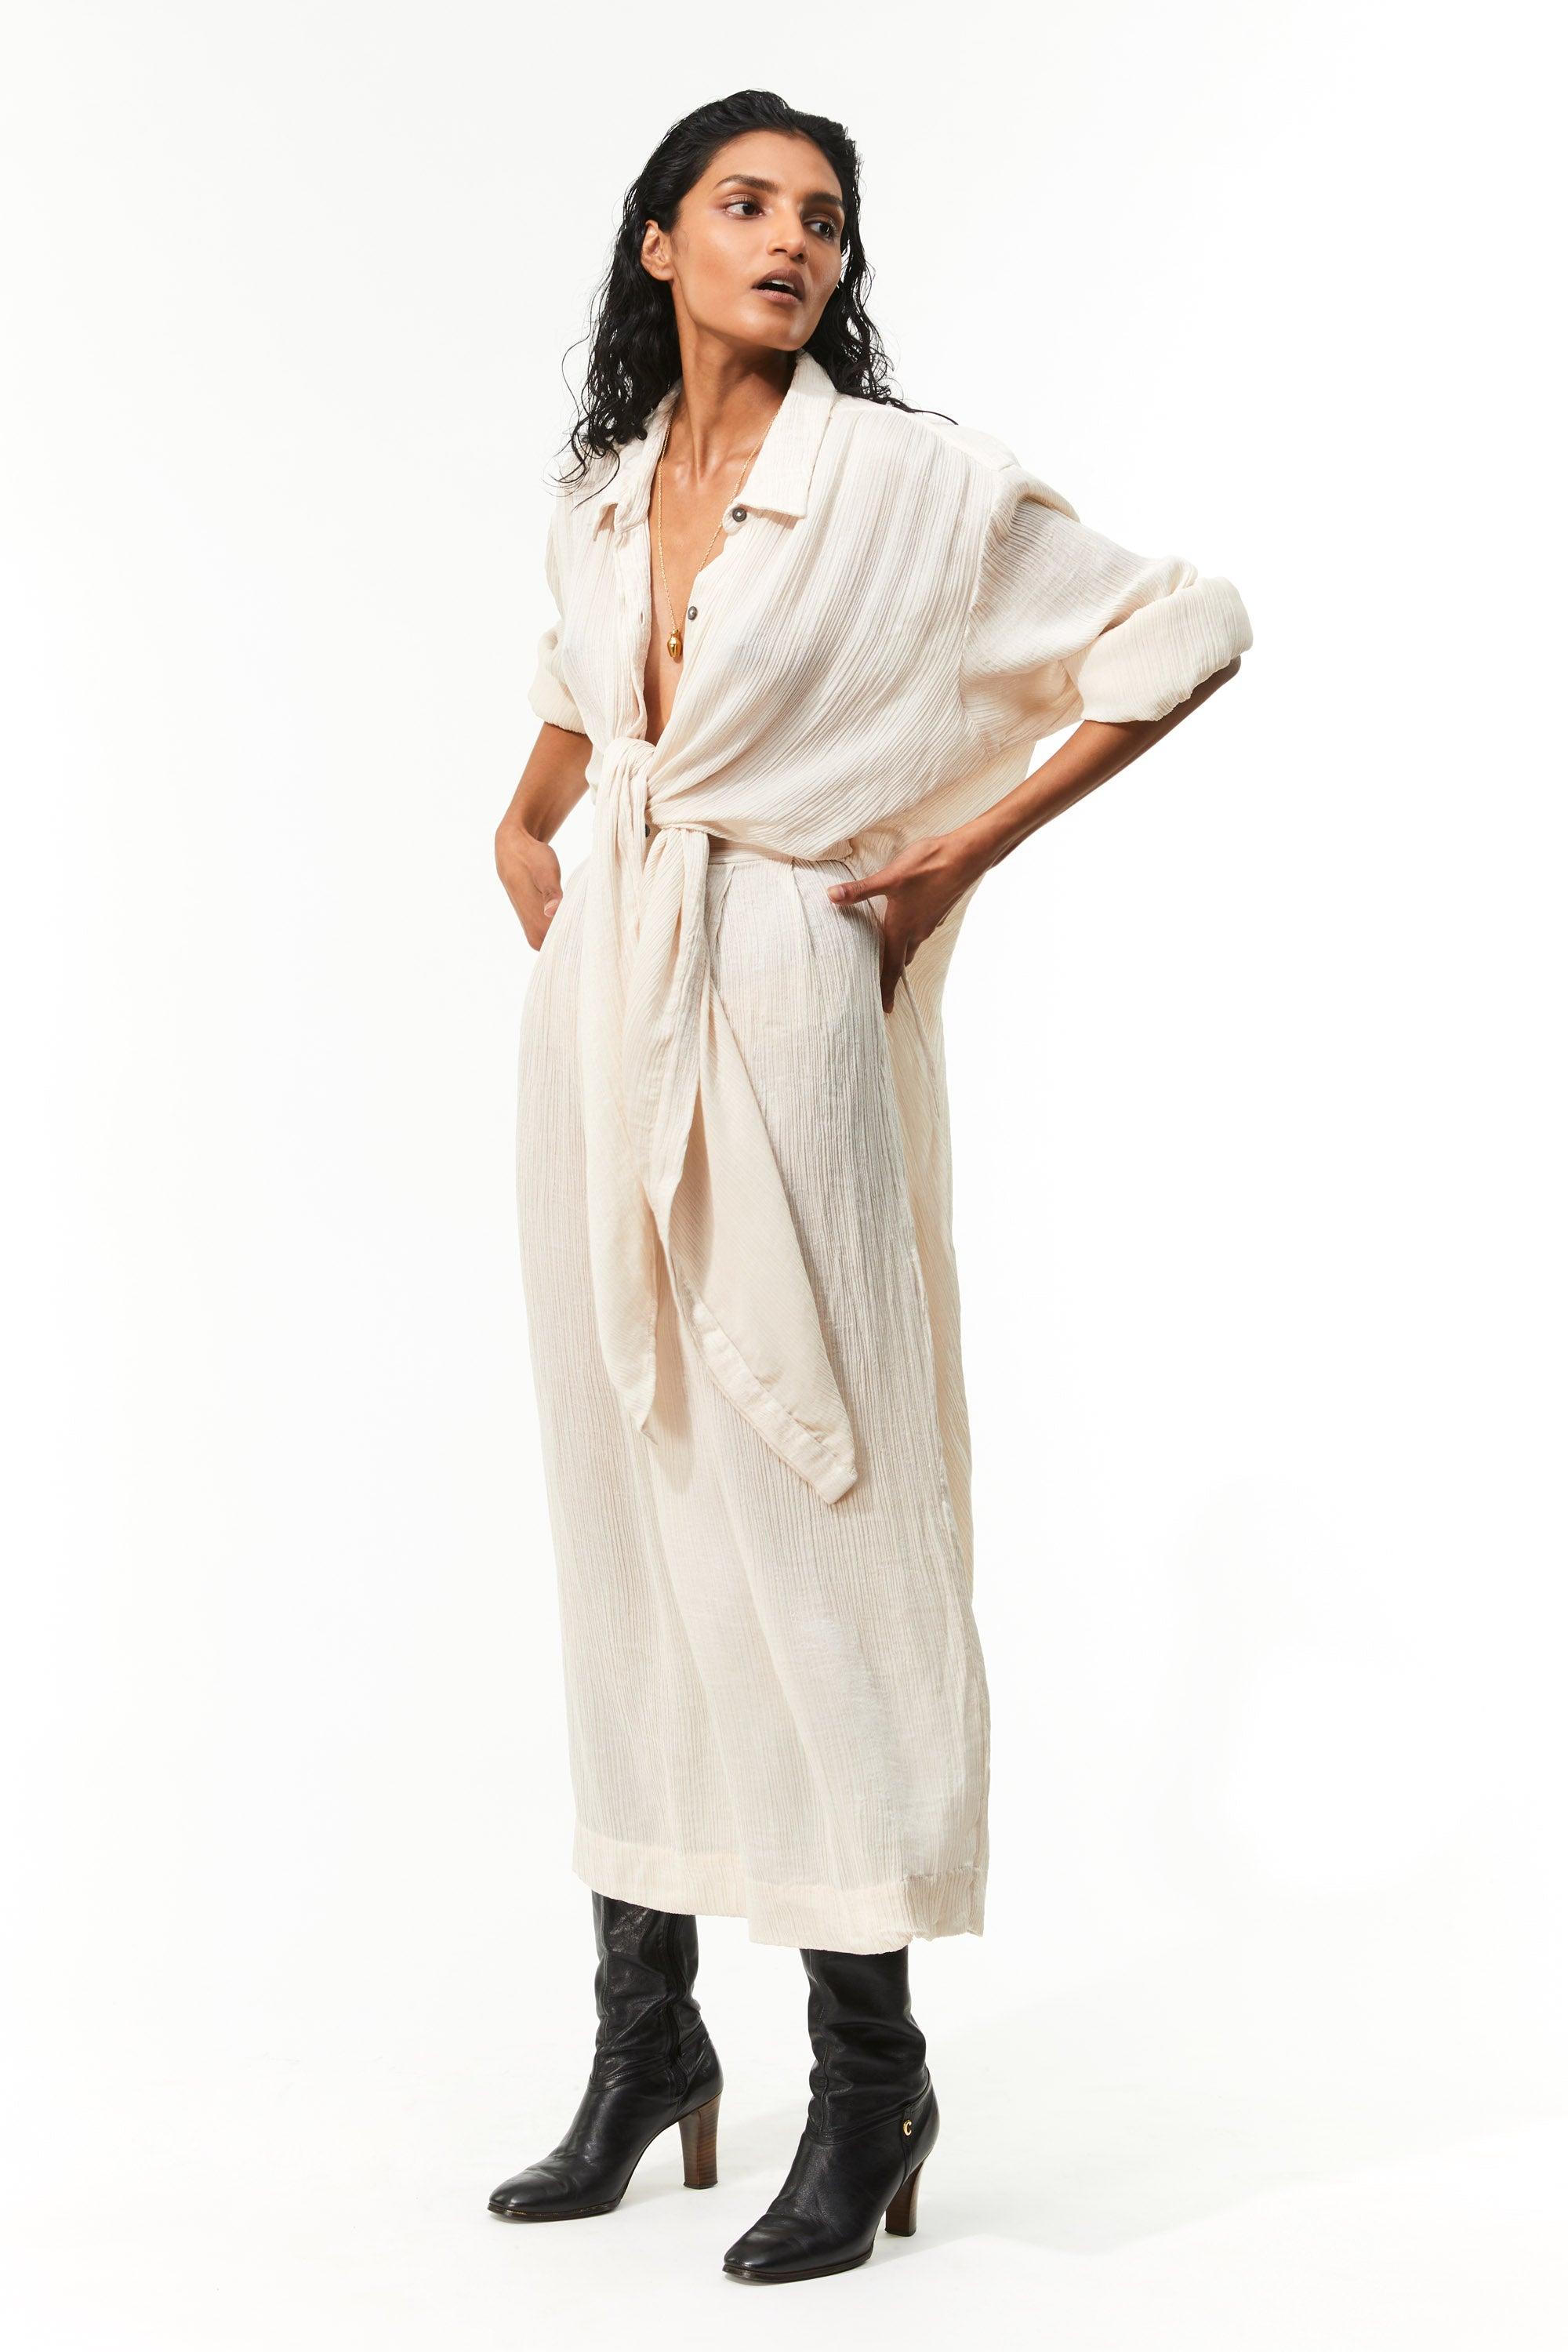 Mara Hoffman Ivory Agata Dress in Tencel Lyocell (tied)